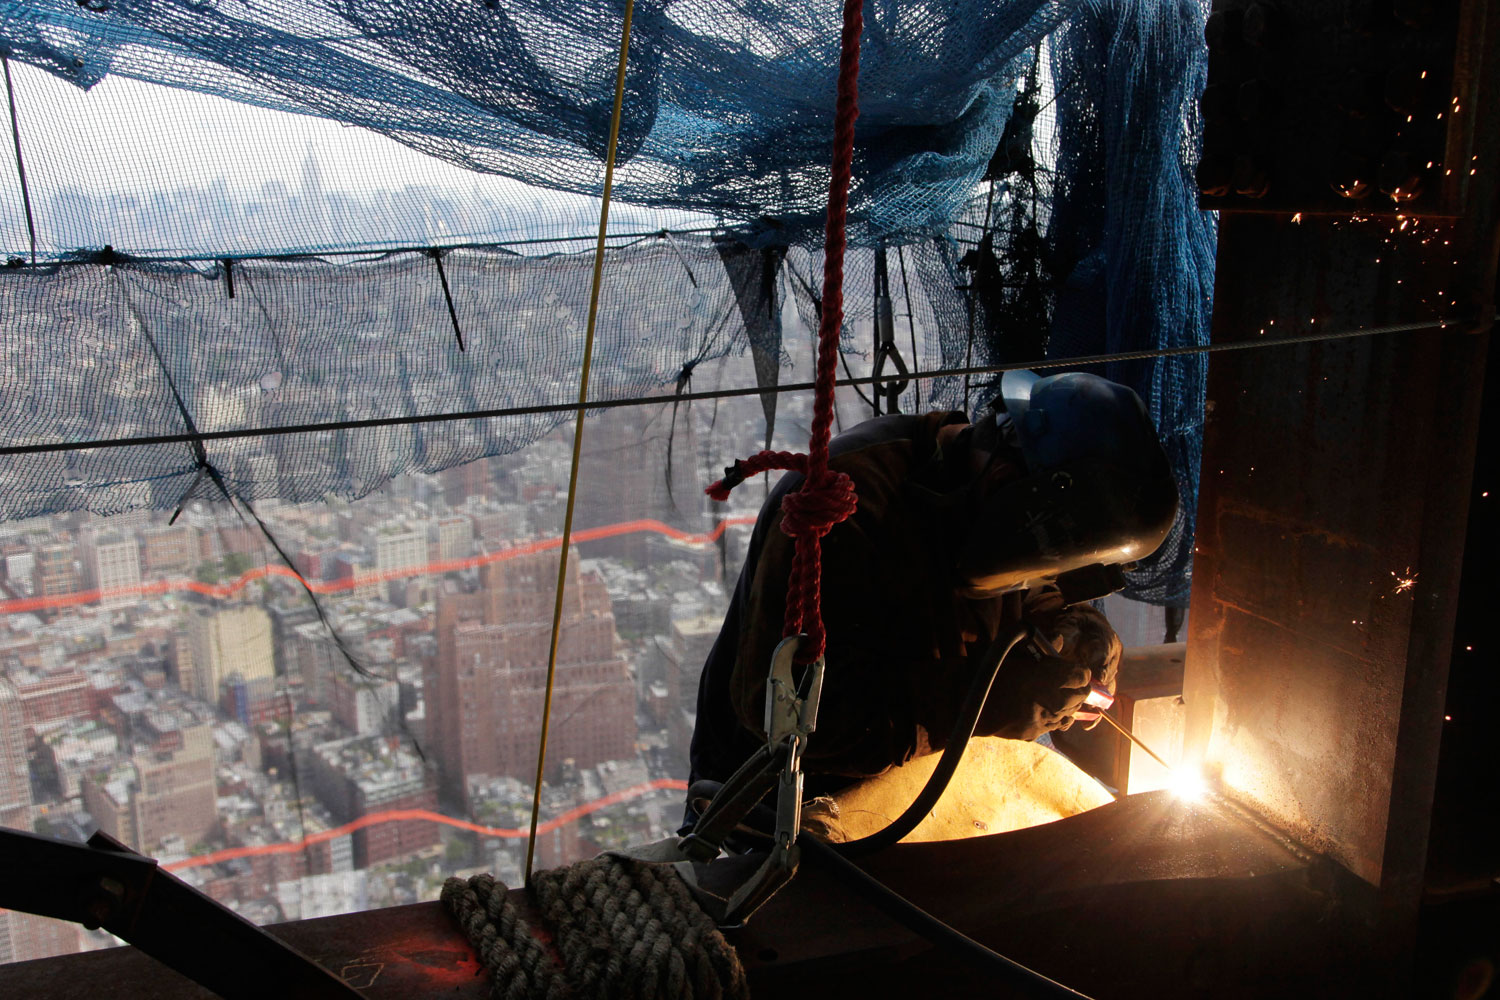 August 24, 2011. A welder works on an upper floor of One World Trade Center, New York. The tower is now built up to the 80th floor.